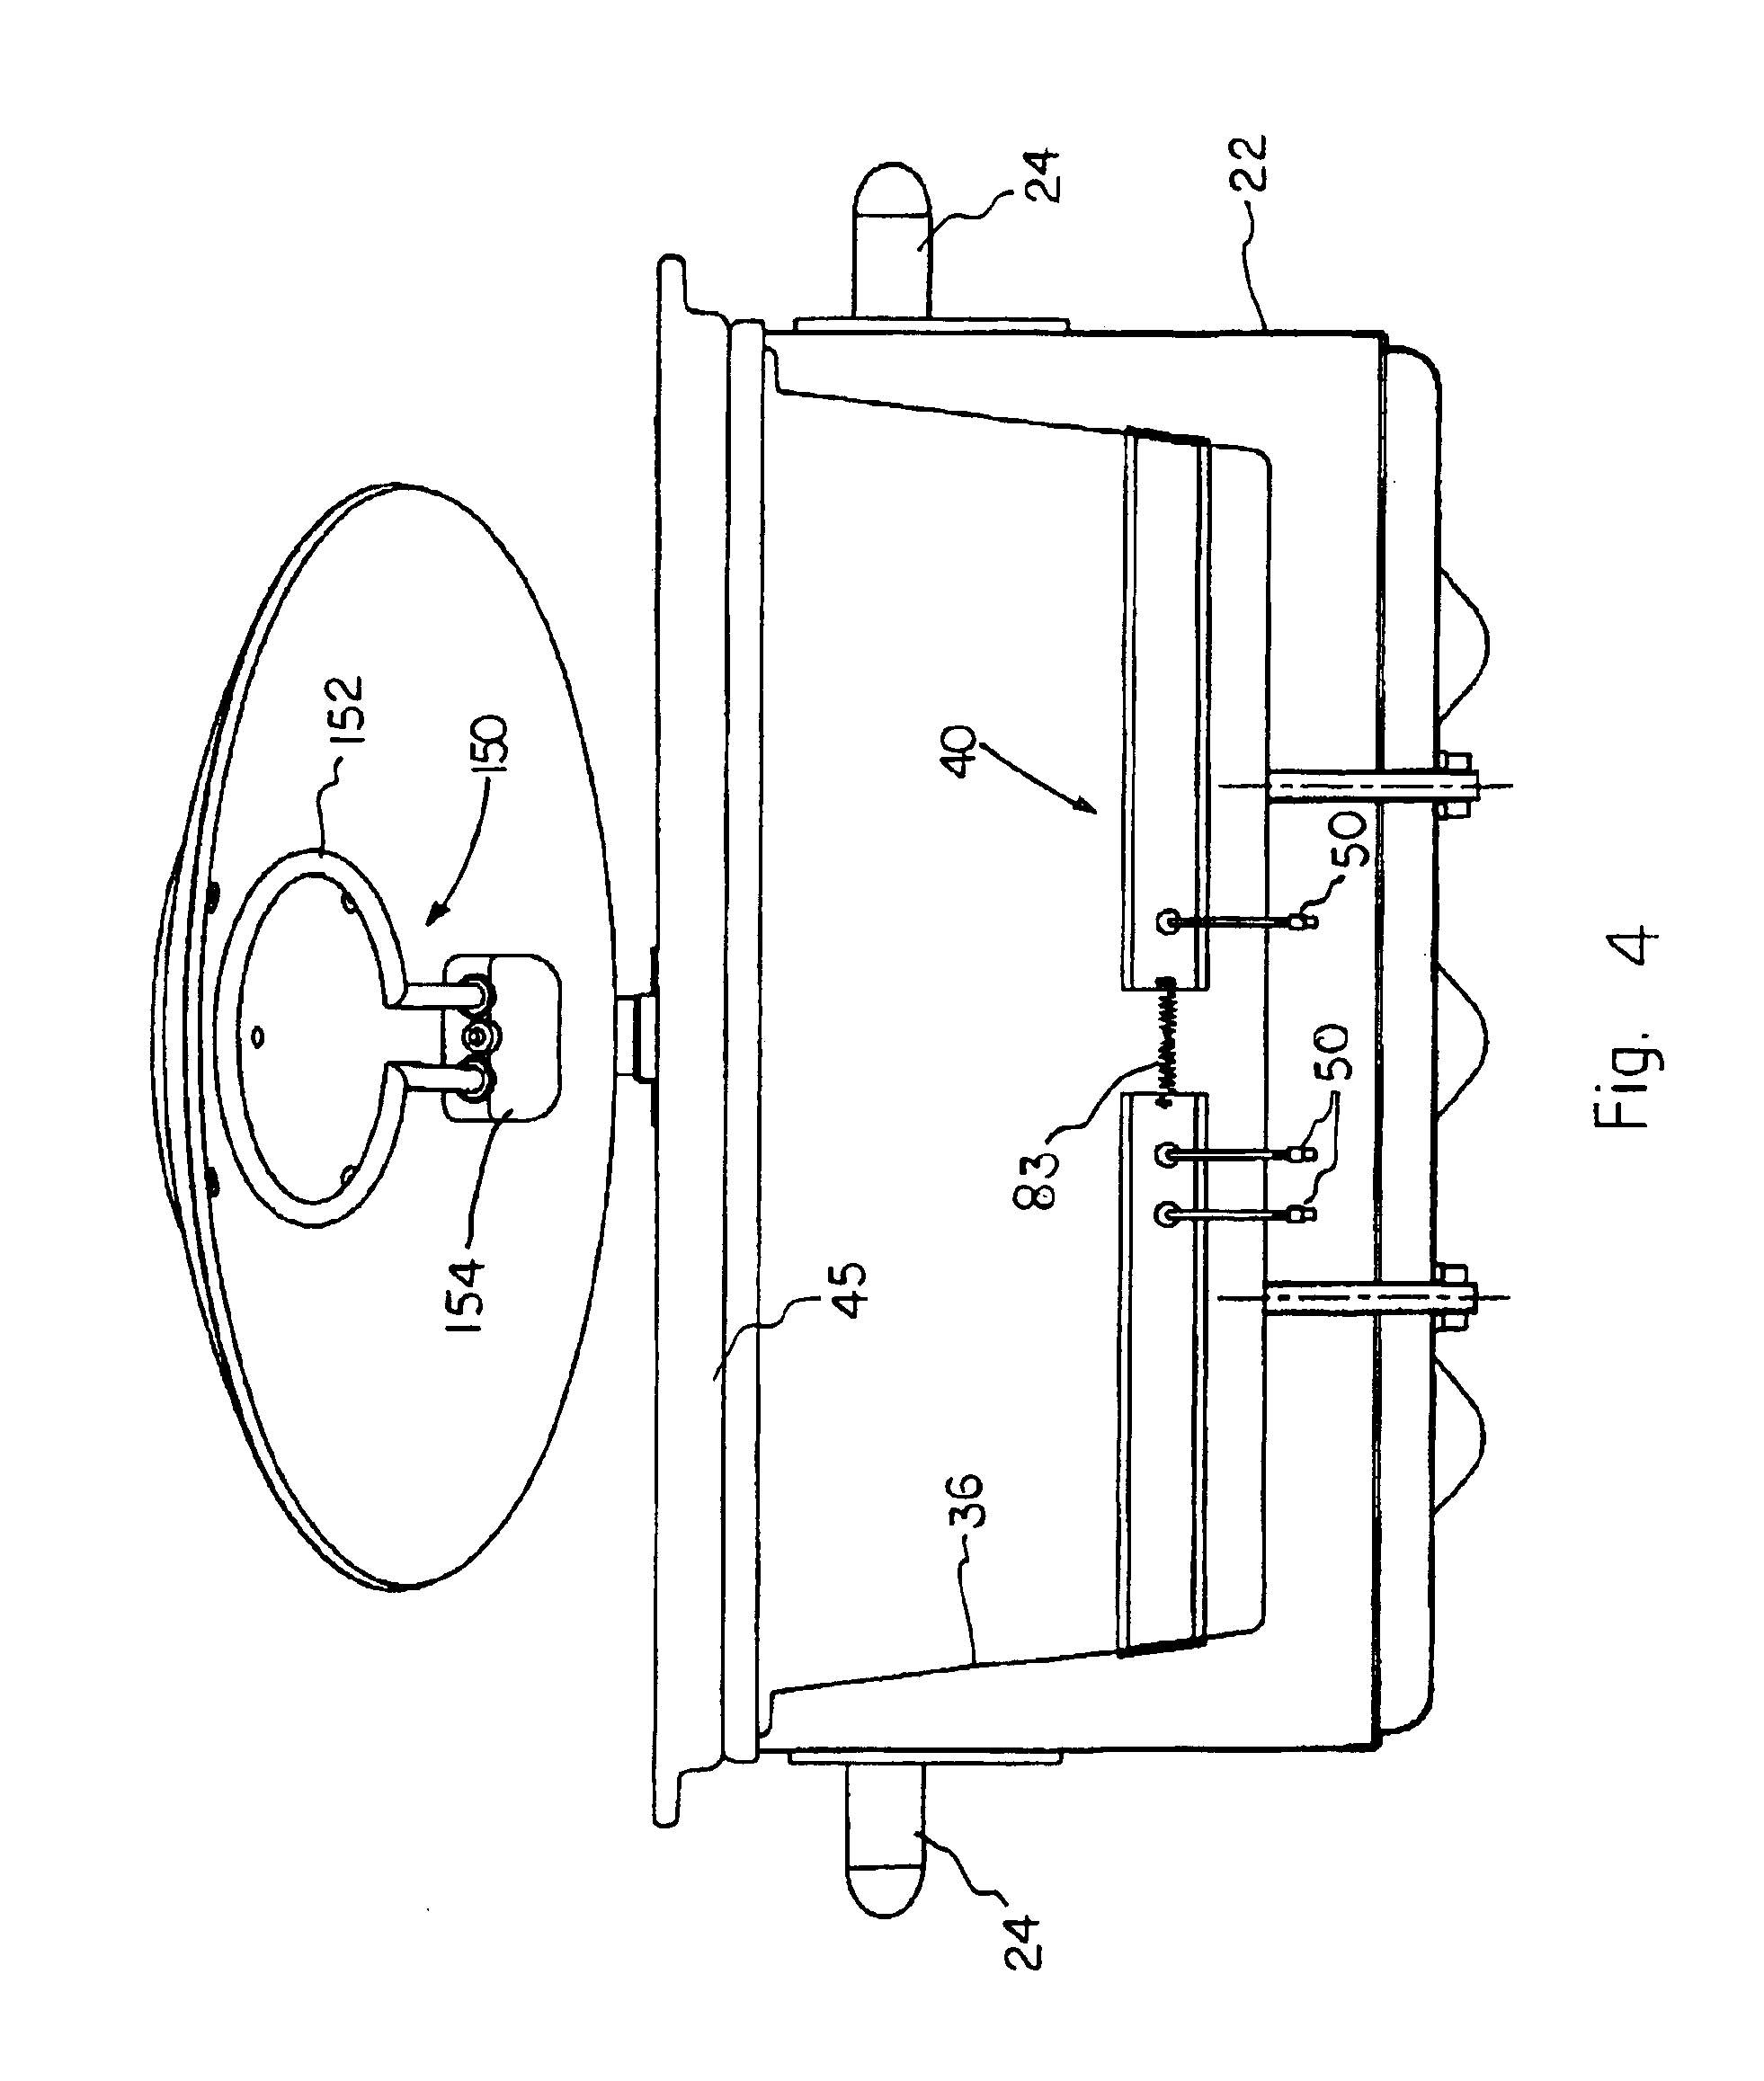 patent us slow cooker dual heating elements google patent drawing